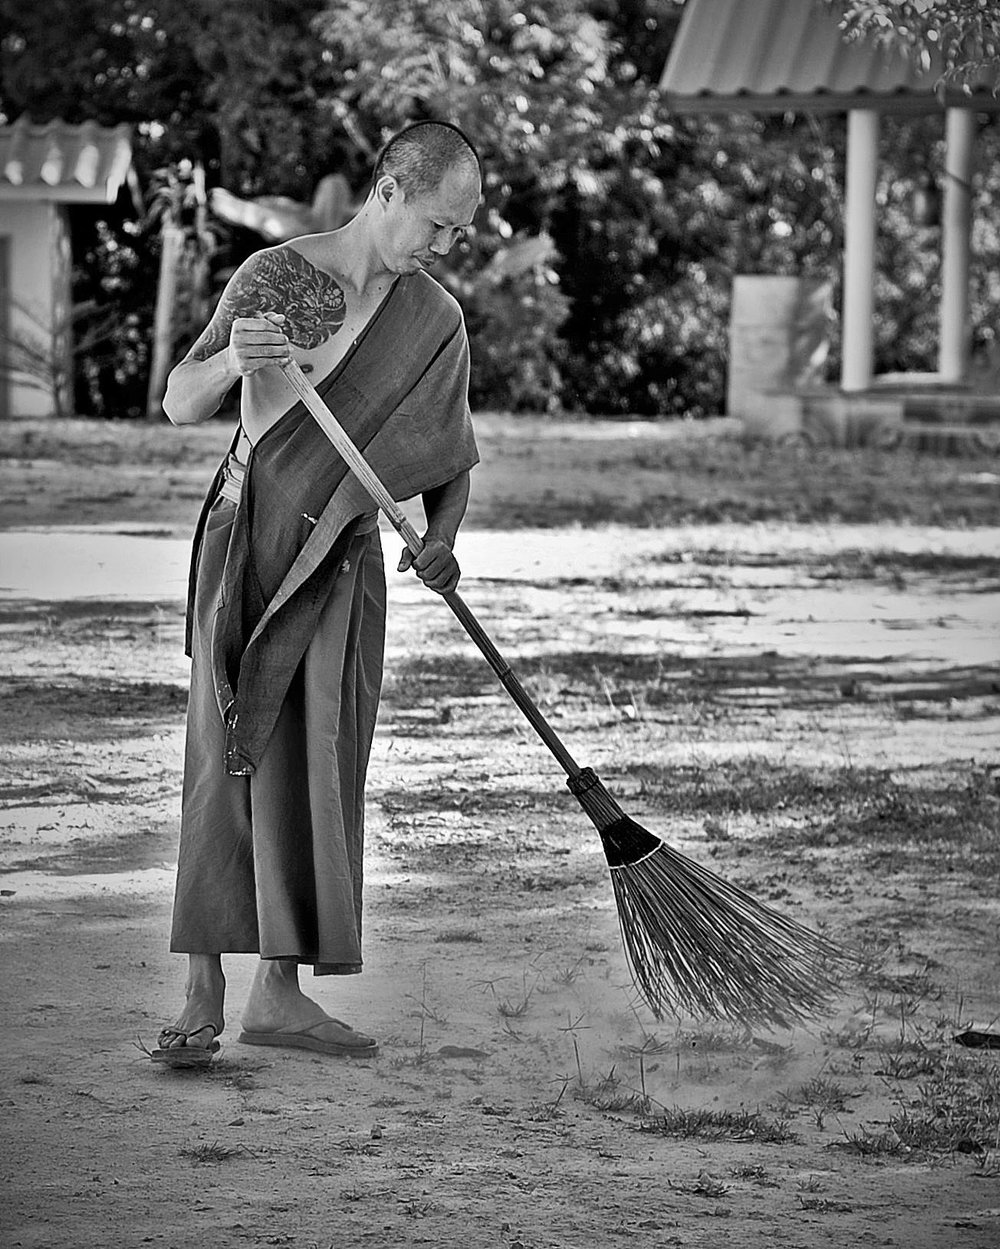 sweeping monk jpg (2)sm.jpg